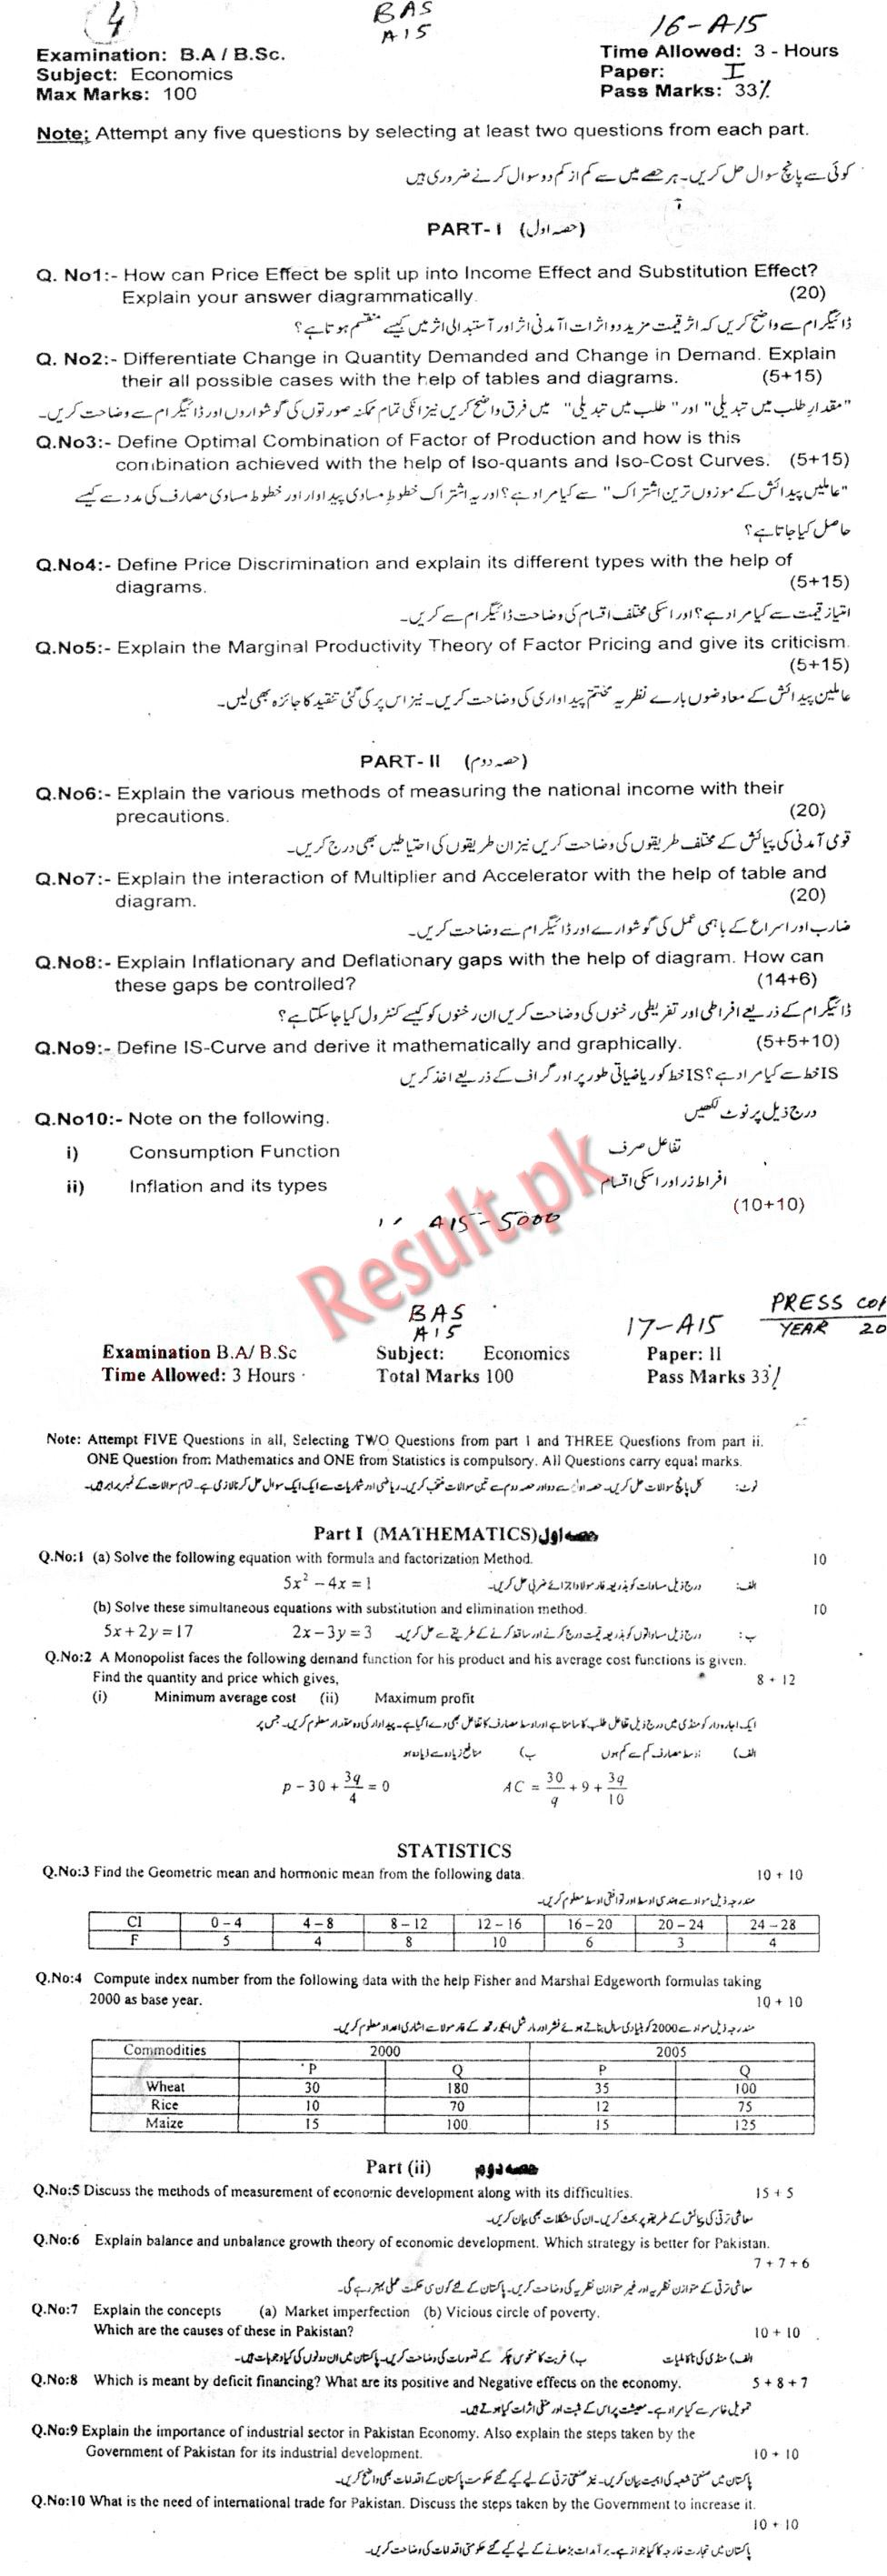 Bahauddin Zakariya University Past Papers 2018, 2017, 2016